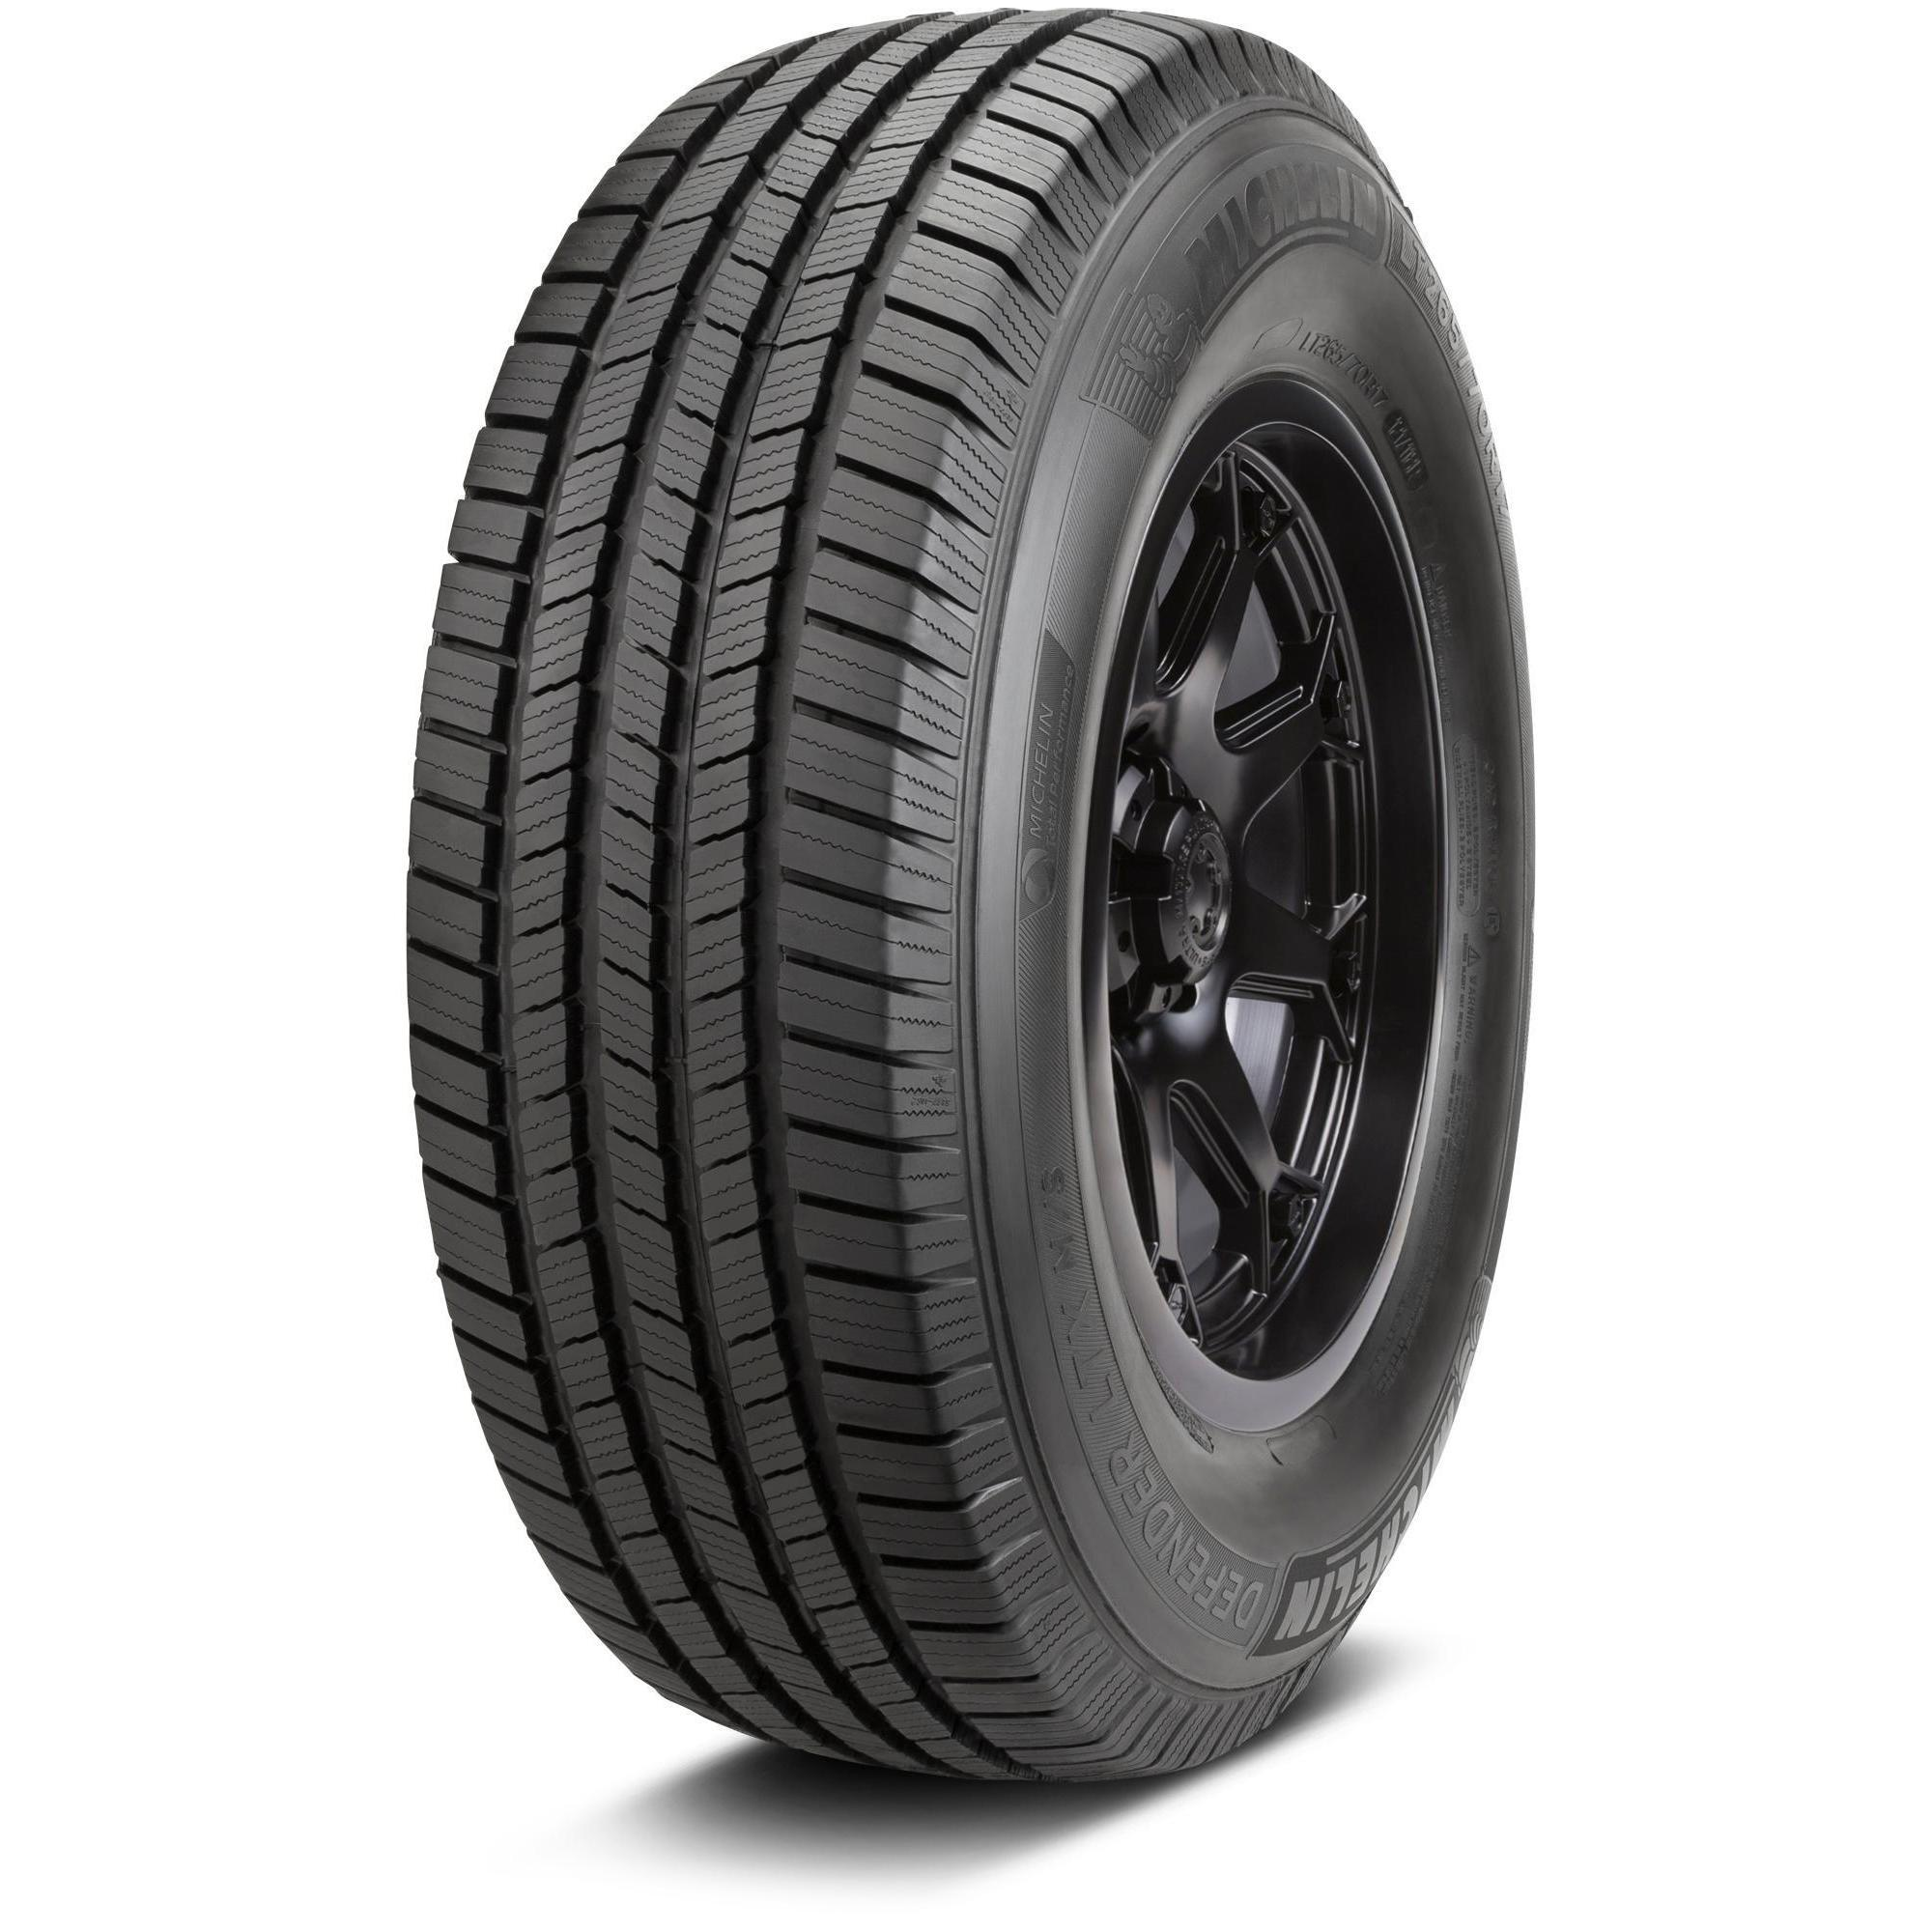 Michelin Defender Ltx Ms Reviews >> Michelin Defender Ltx M S Tirebuyer